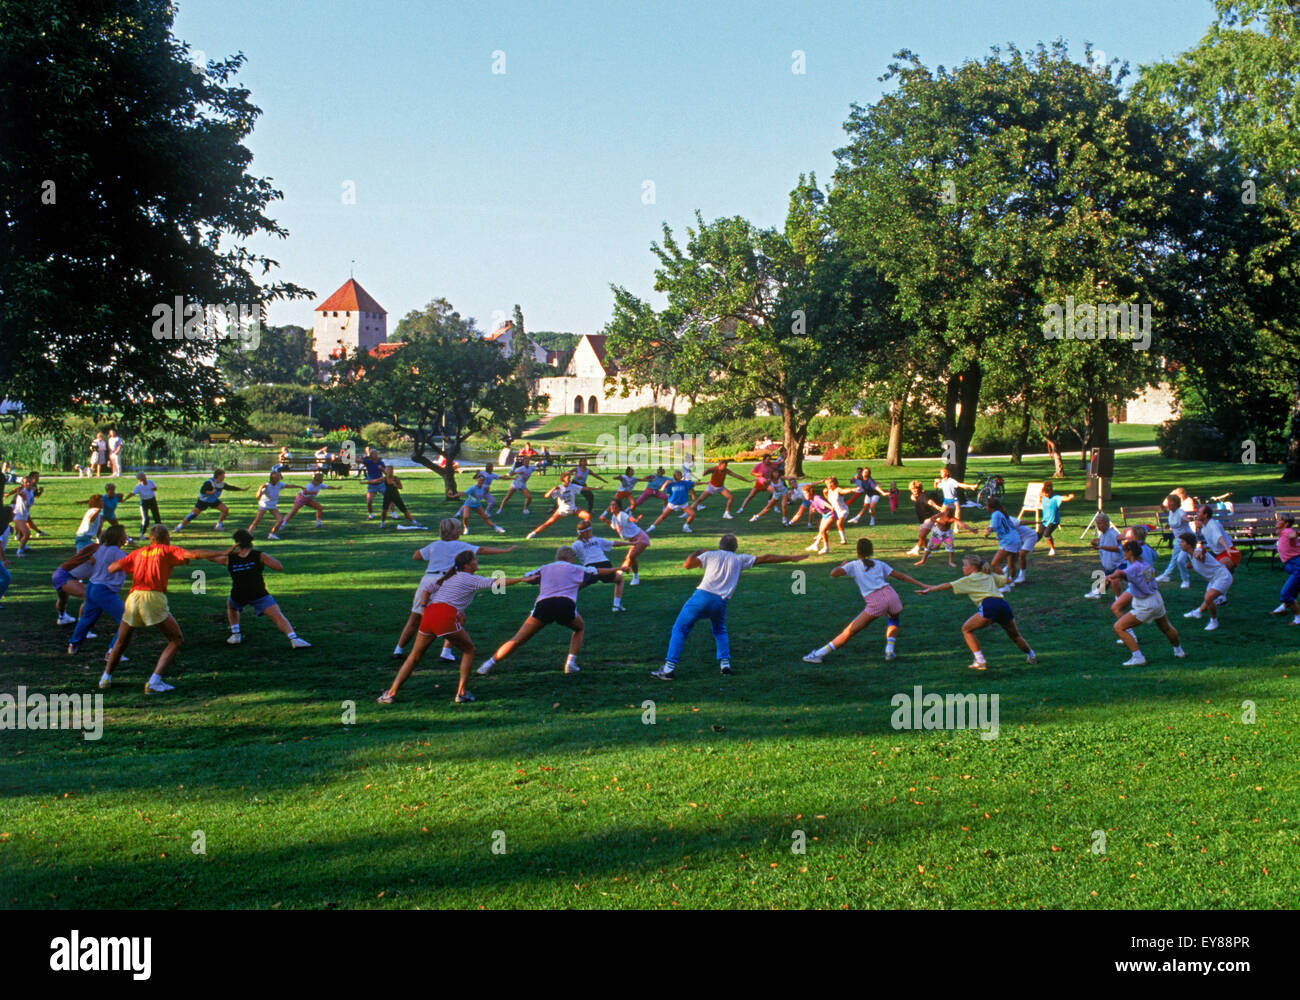 Outdoor exercise and aerobic classes in town of Visby on Swedish Island of Gotland, a place filled with Medieval - Stock Image